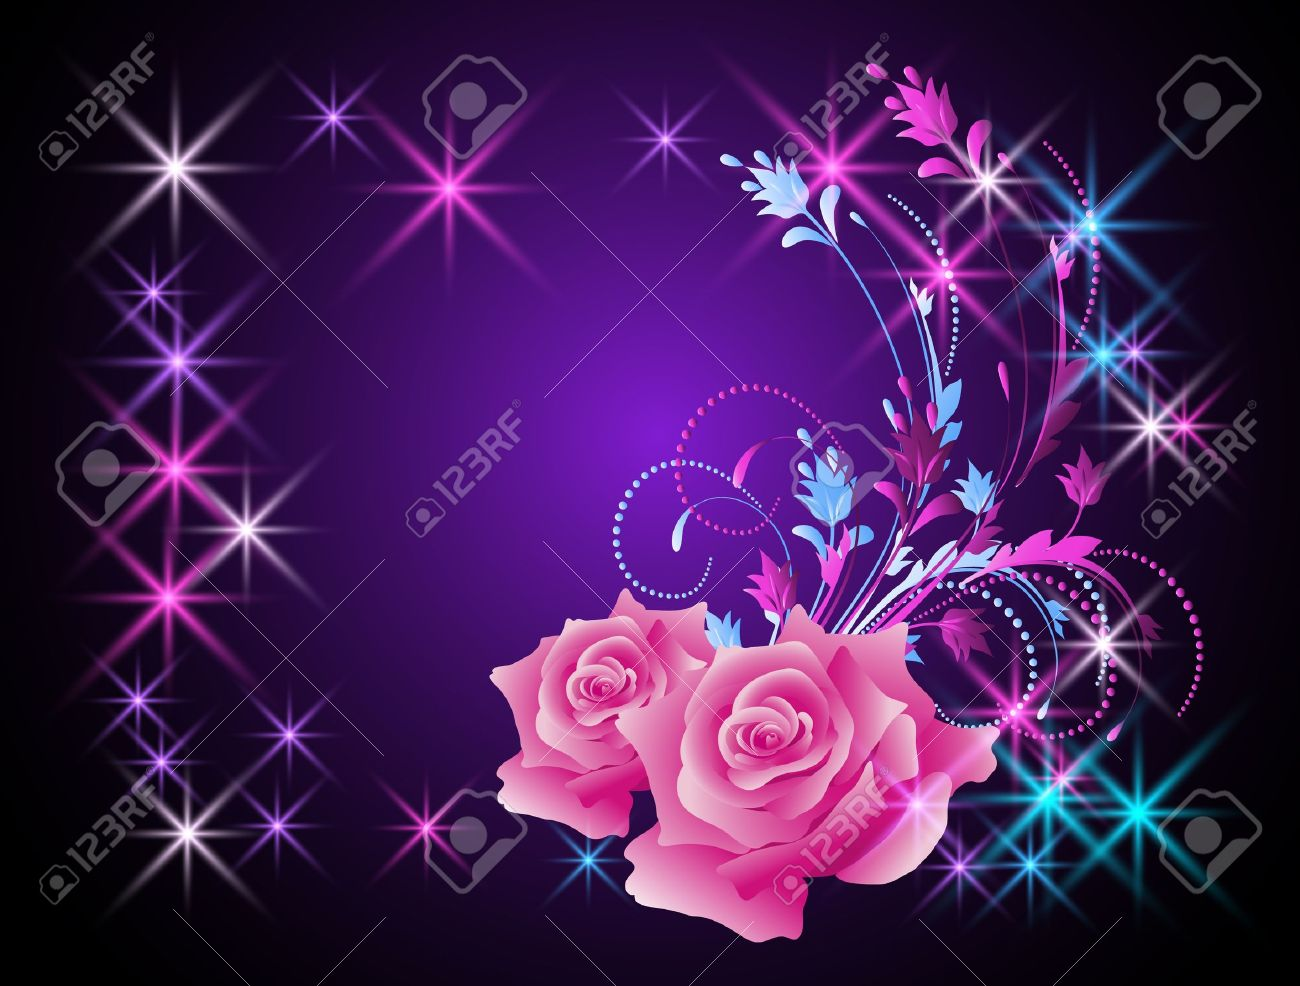 Glowing background with roses and stars Stock Vector - 14676310